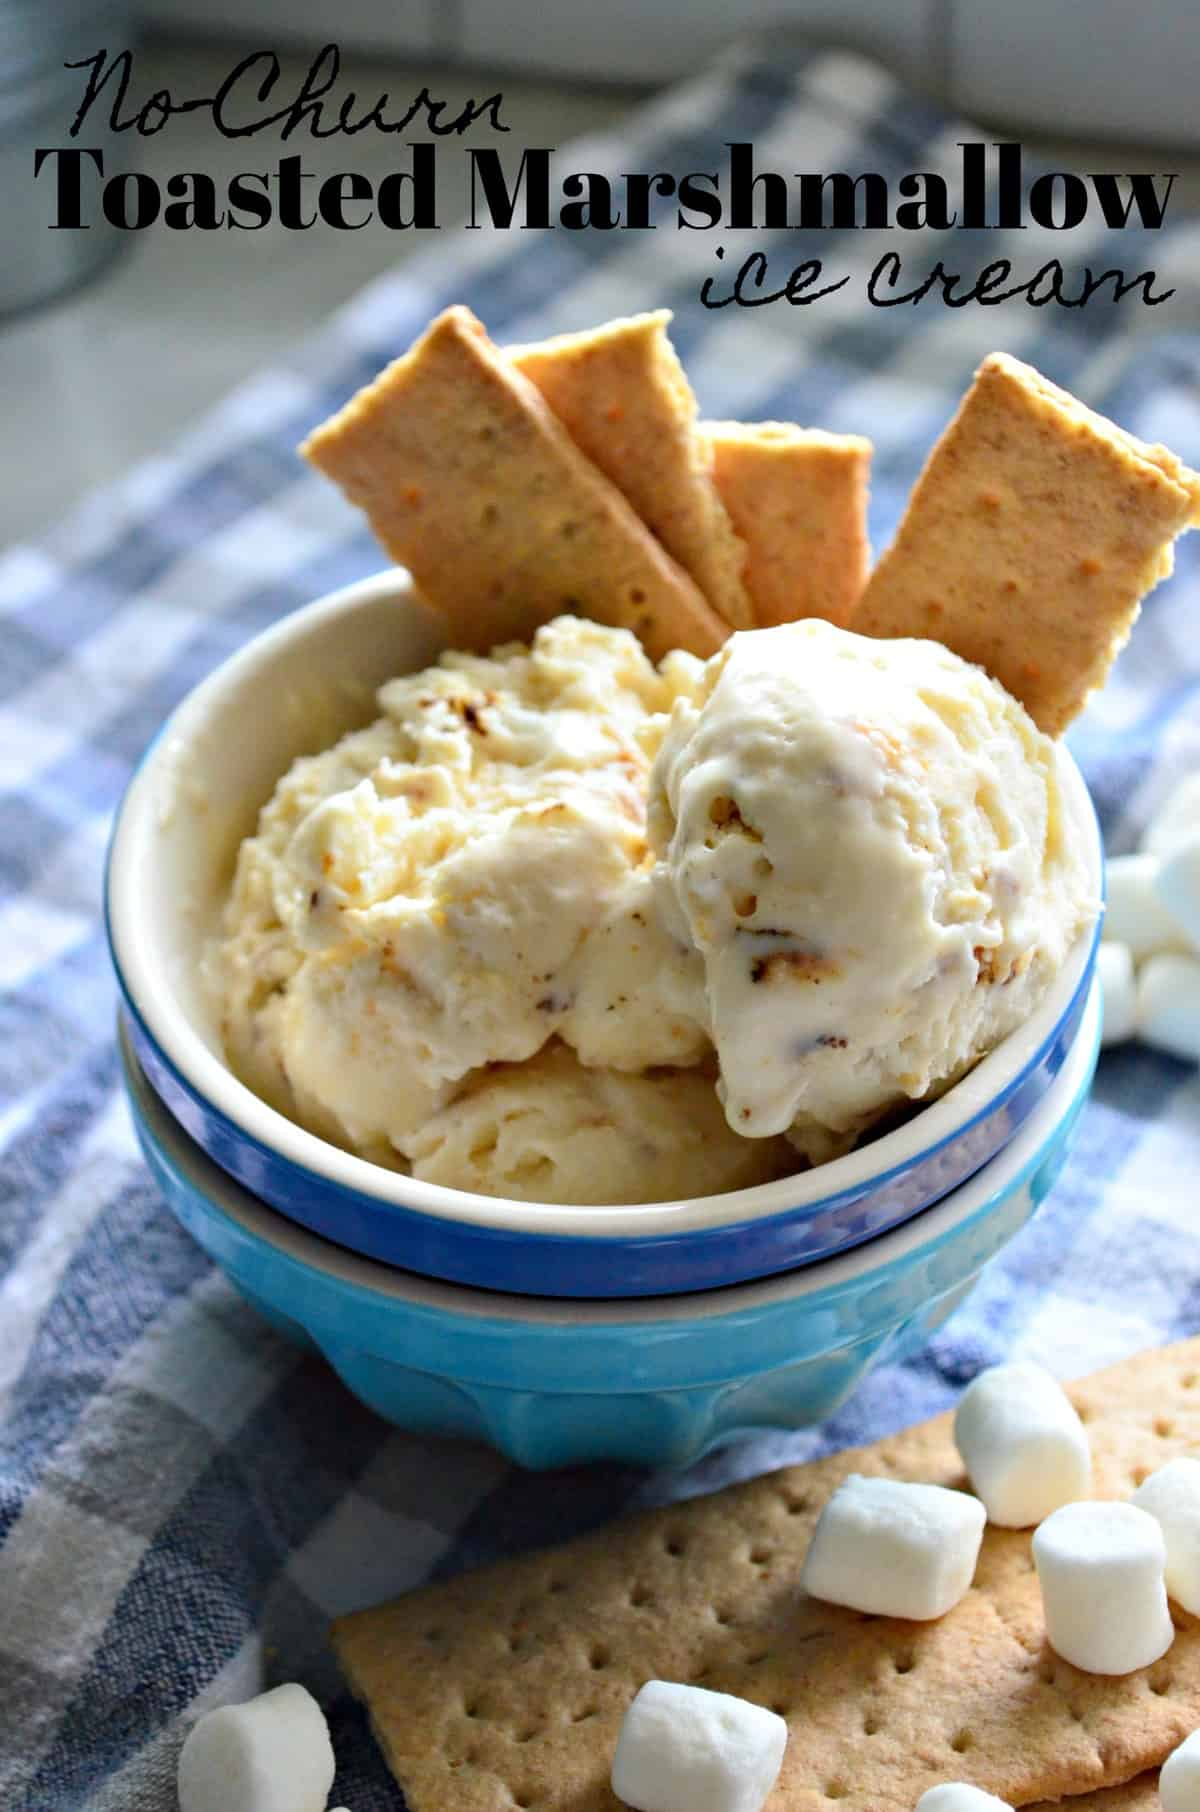 Closeup bowl of creamy colored chunky ice cream with graham crackers and title text.